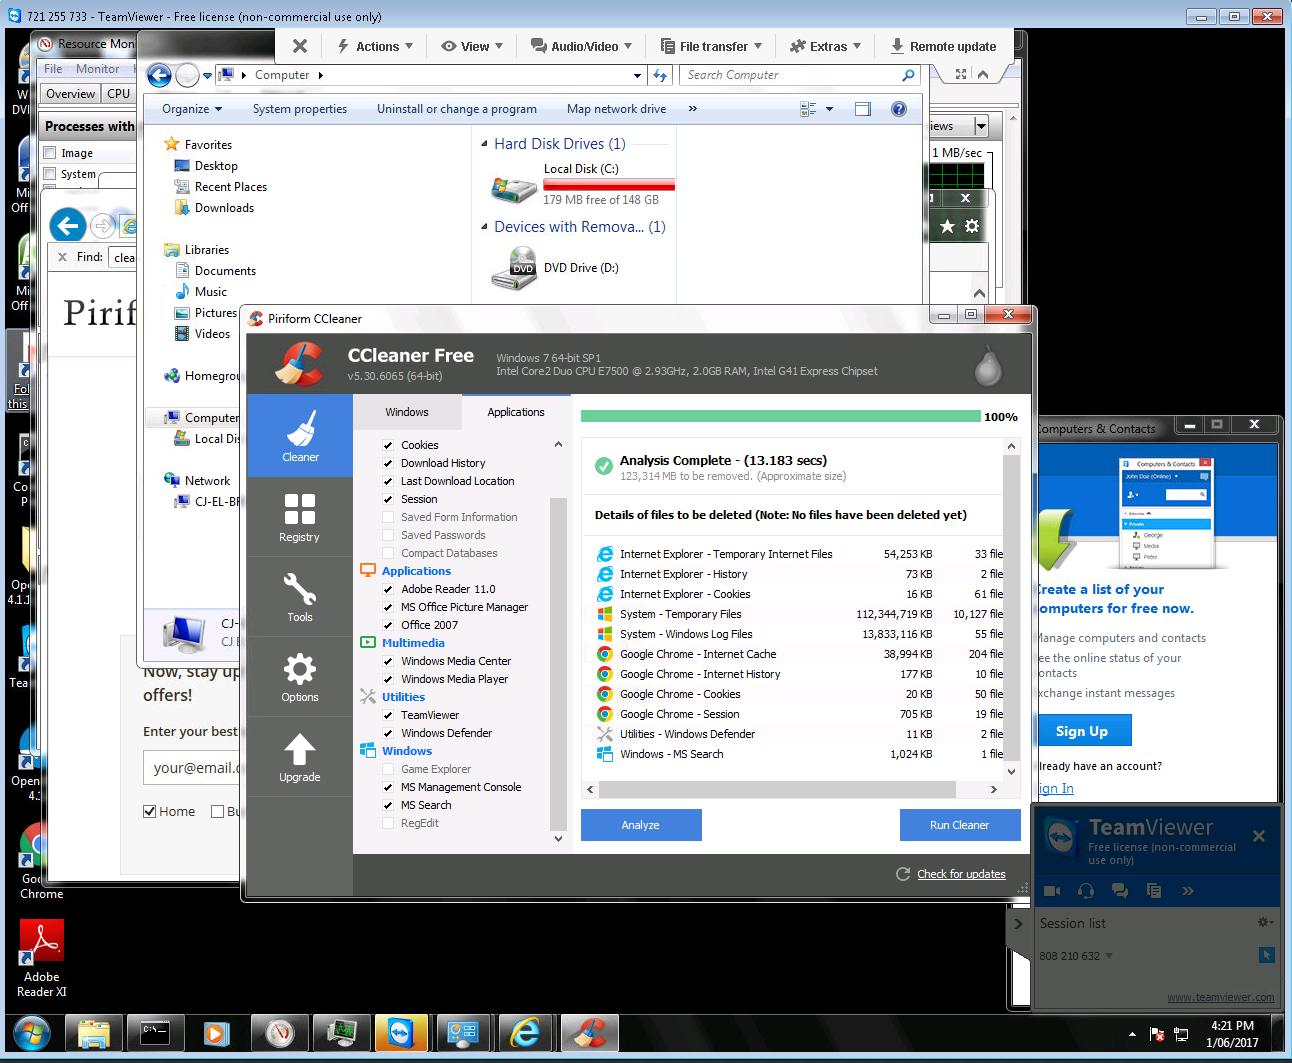 This should be CCleaner-1.png.  Is it missing?